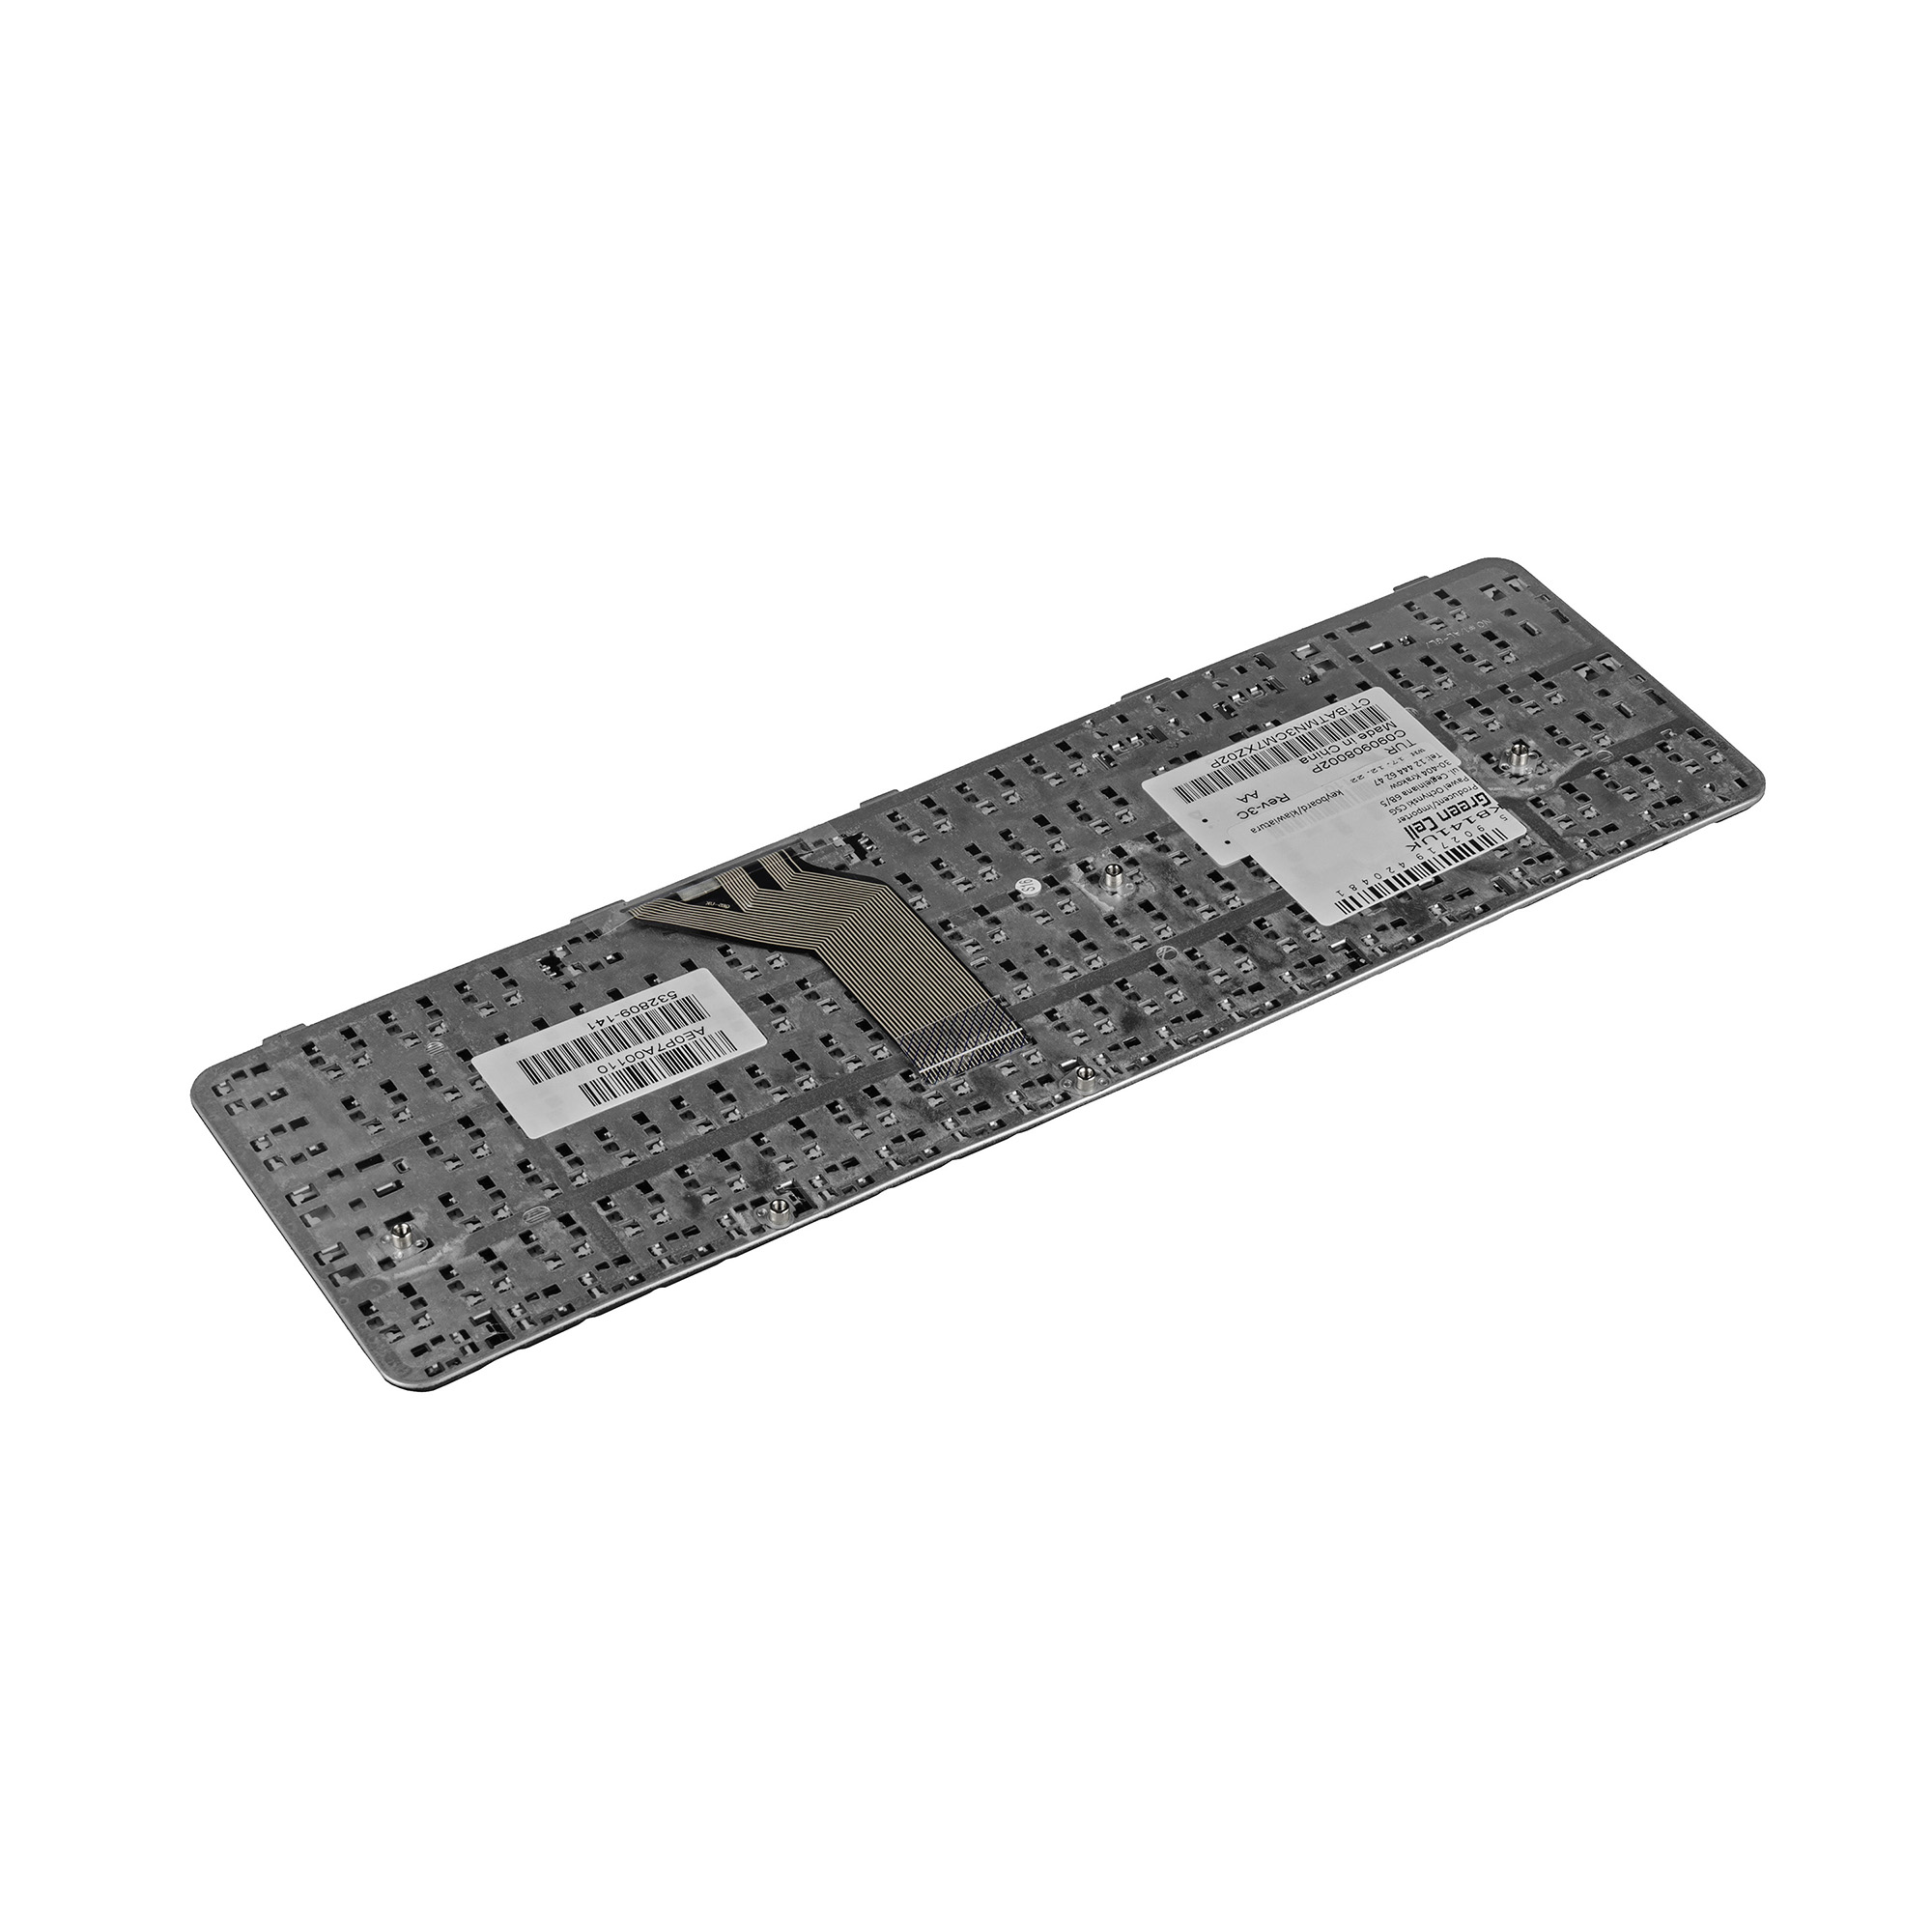 Clavier-pour-Ordinateur-HP-Compaq-Presario-CQ71-212SF-QWERTY-US-English